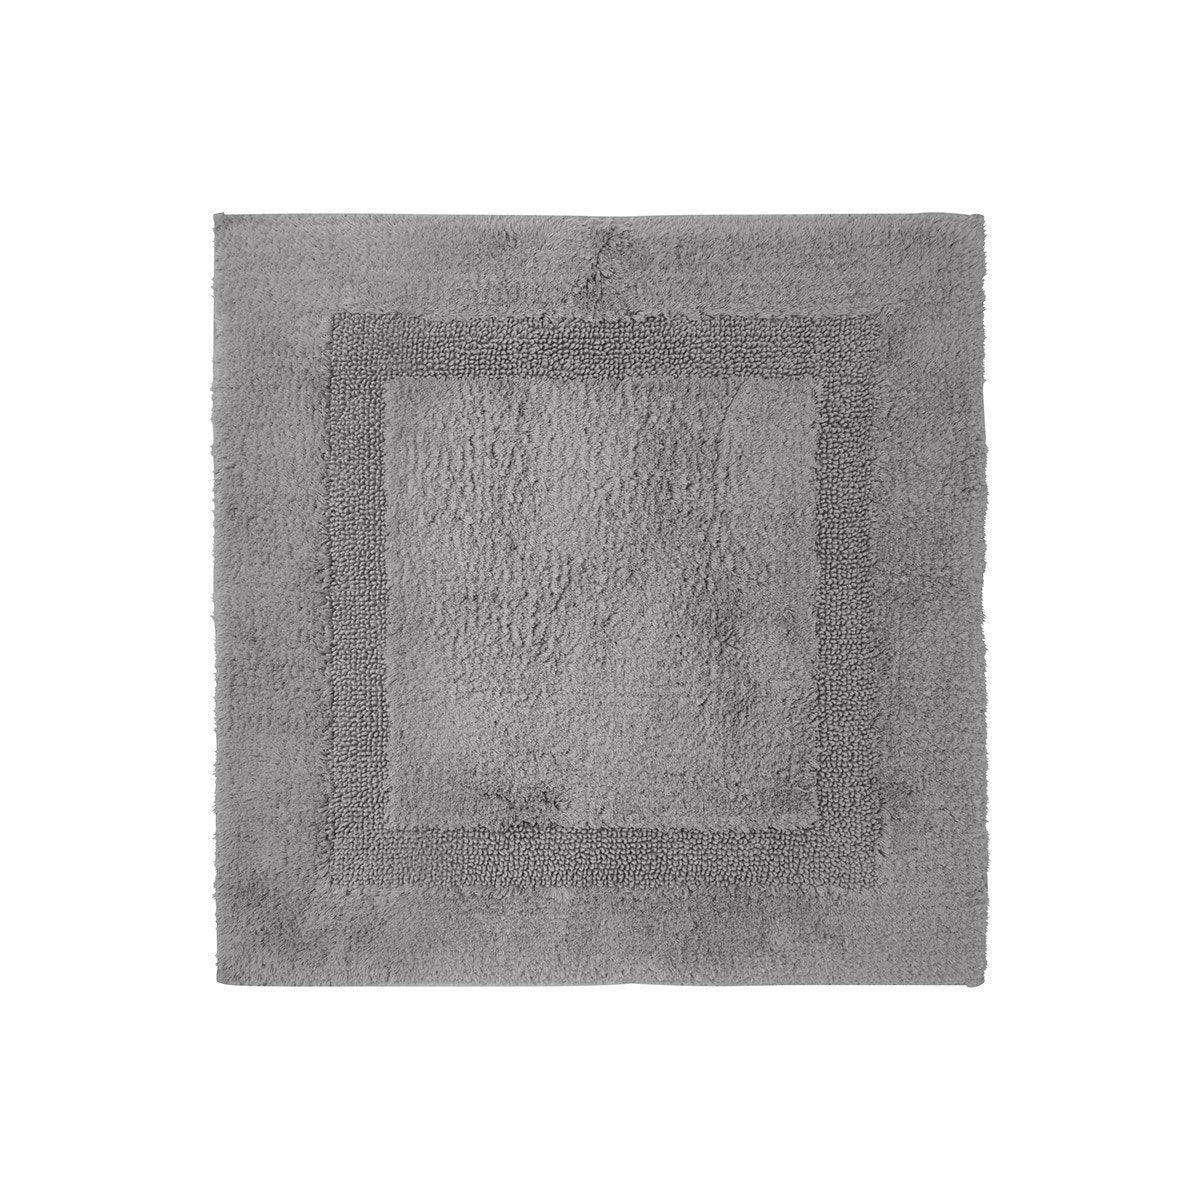 Aquilon Platine Reversible Bath Rug by Yves Delorme | Fig Linens - square, gray bath mat, rug